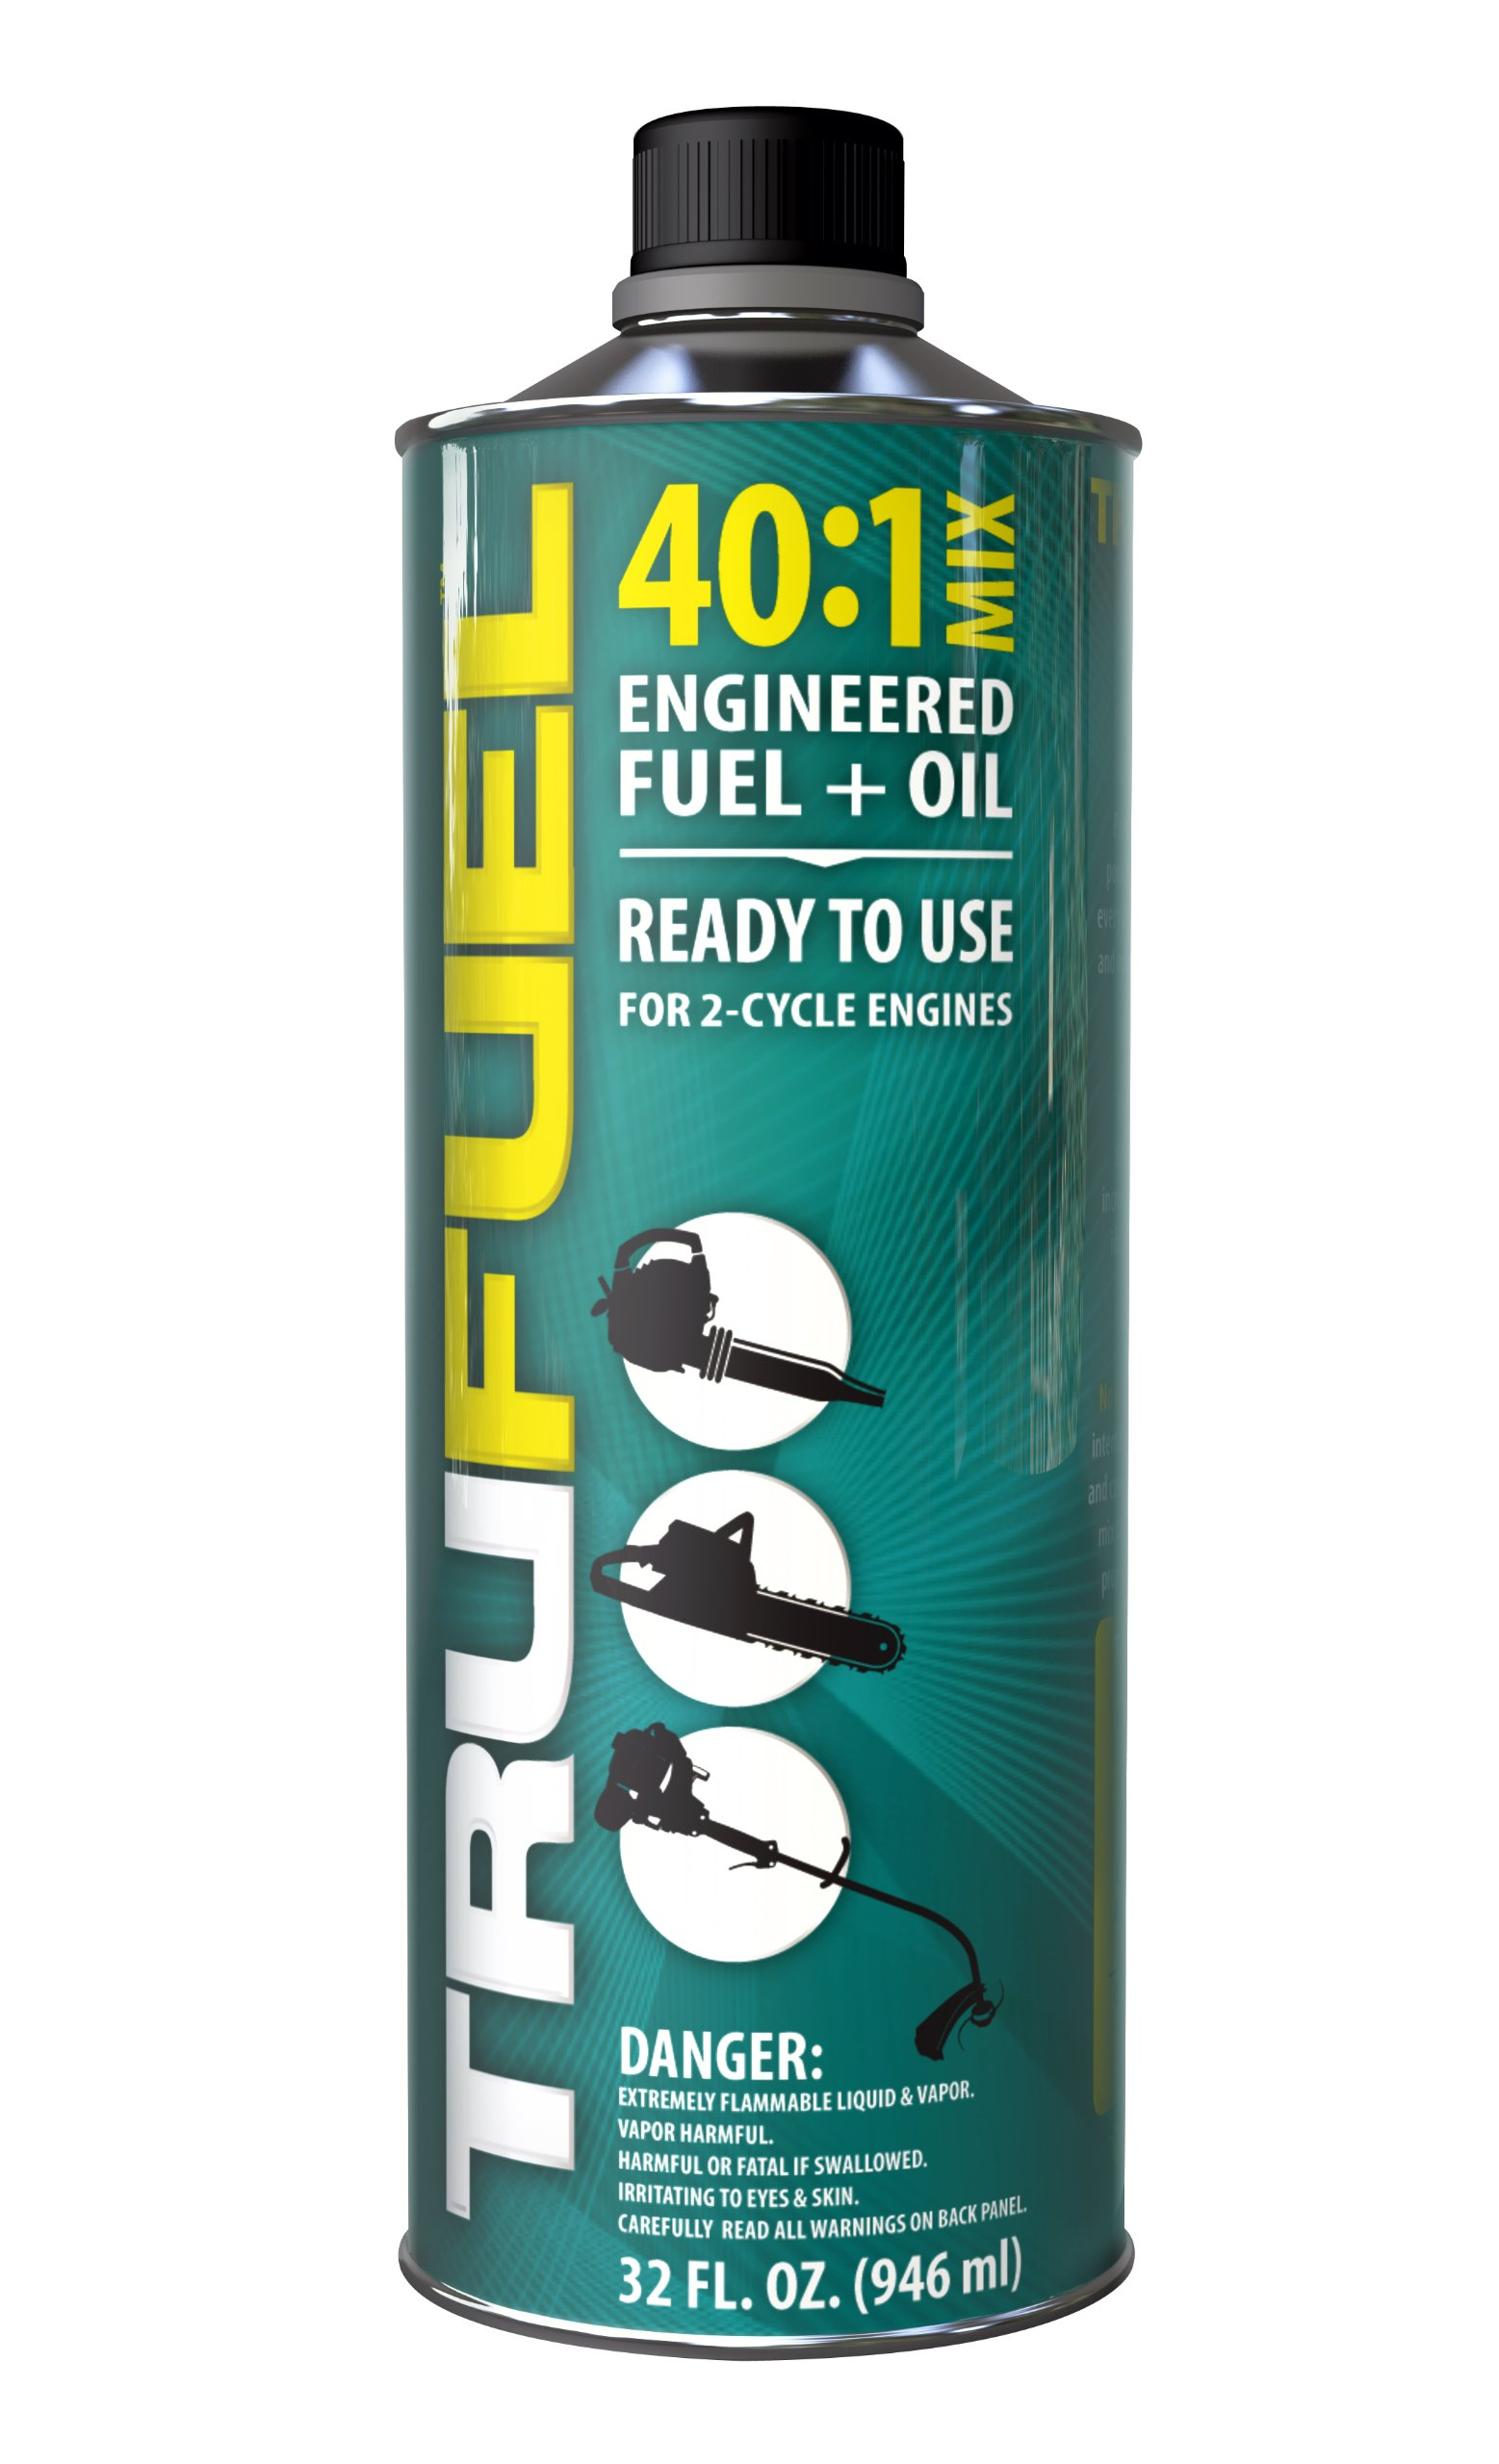 TruFuel 2-Cycle 40:1 Pre-Blended Fuel for Outdoor Power Equipment - 32 oz. (Case of 6) by TruFuel